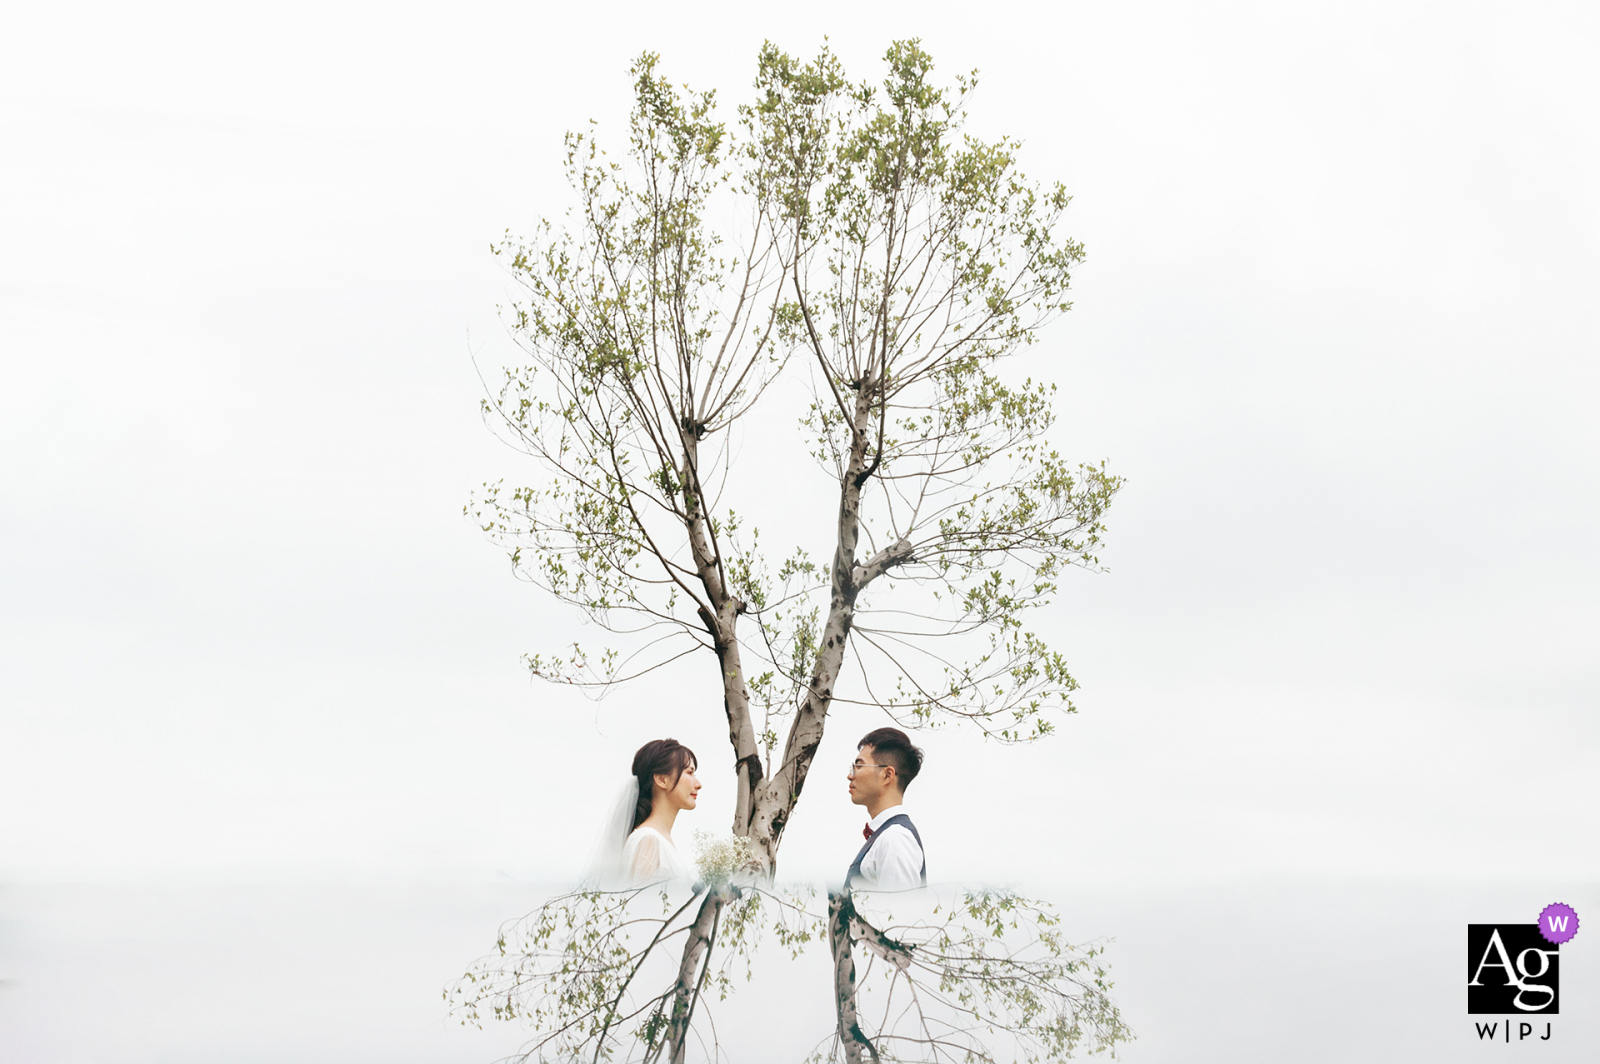 Fuzhou Fujian artistic wedding photo of the bride and groom in white under a tree